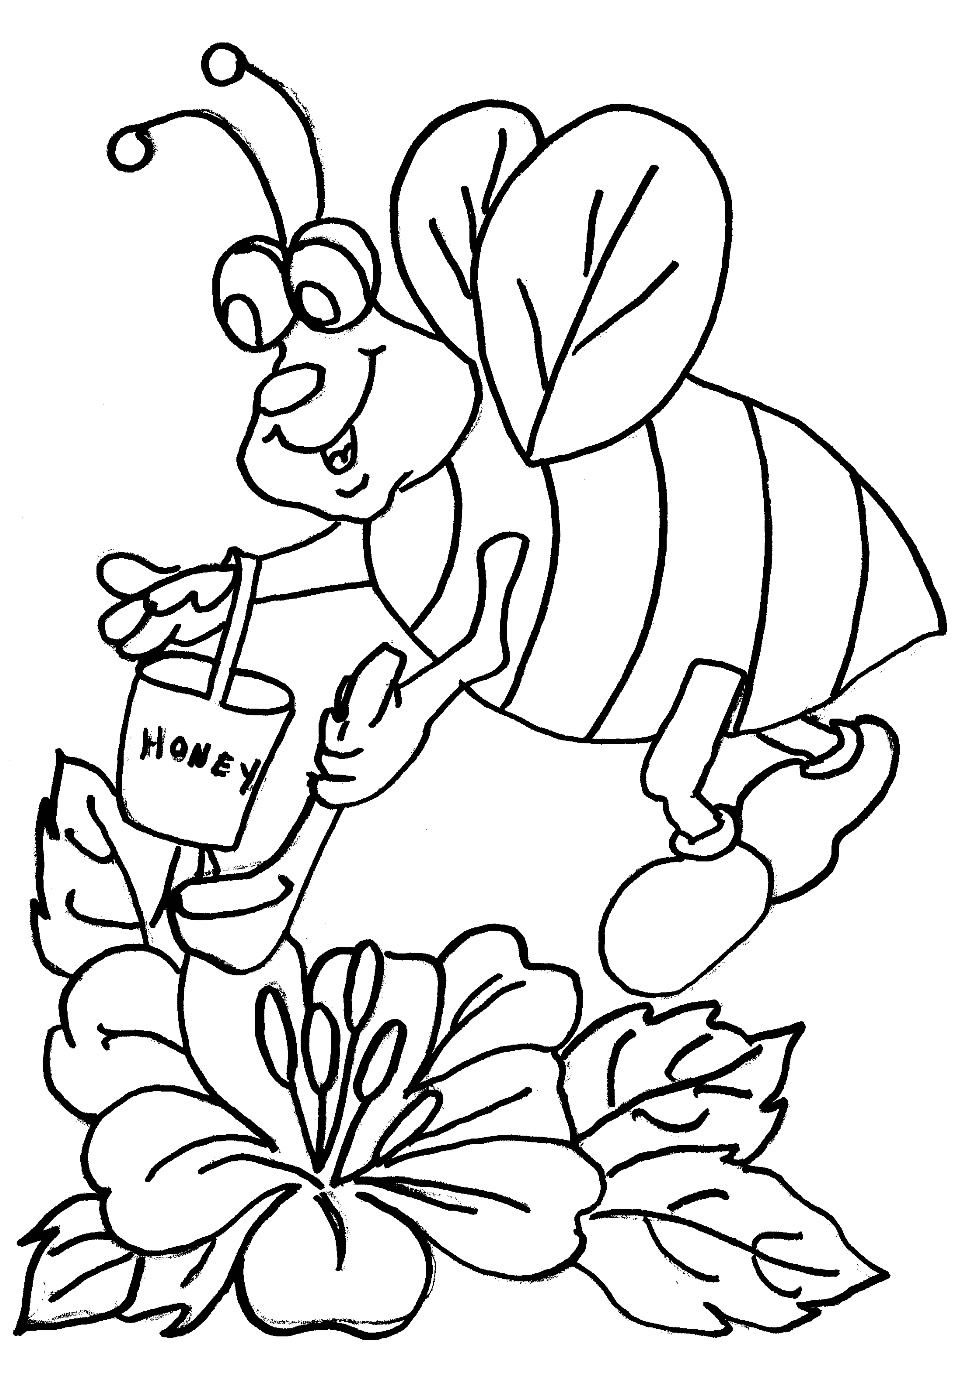 bees colouring pages bee coloring pages for kids preschool and kindergarten bees pages colouring